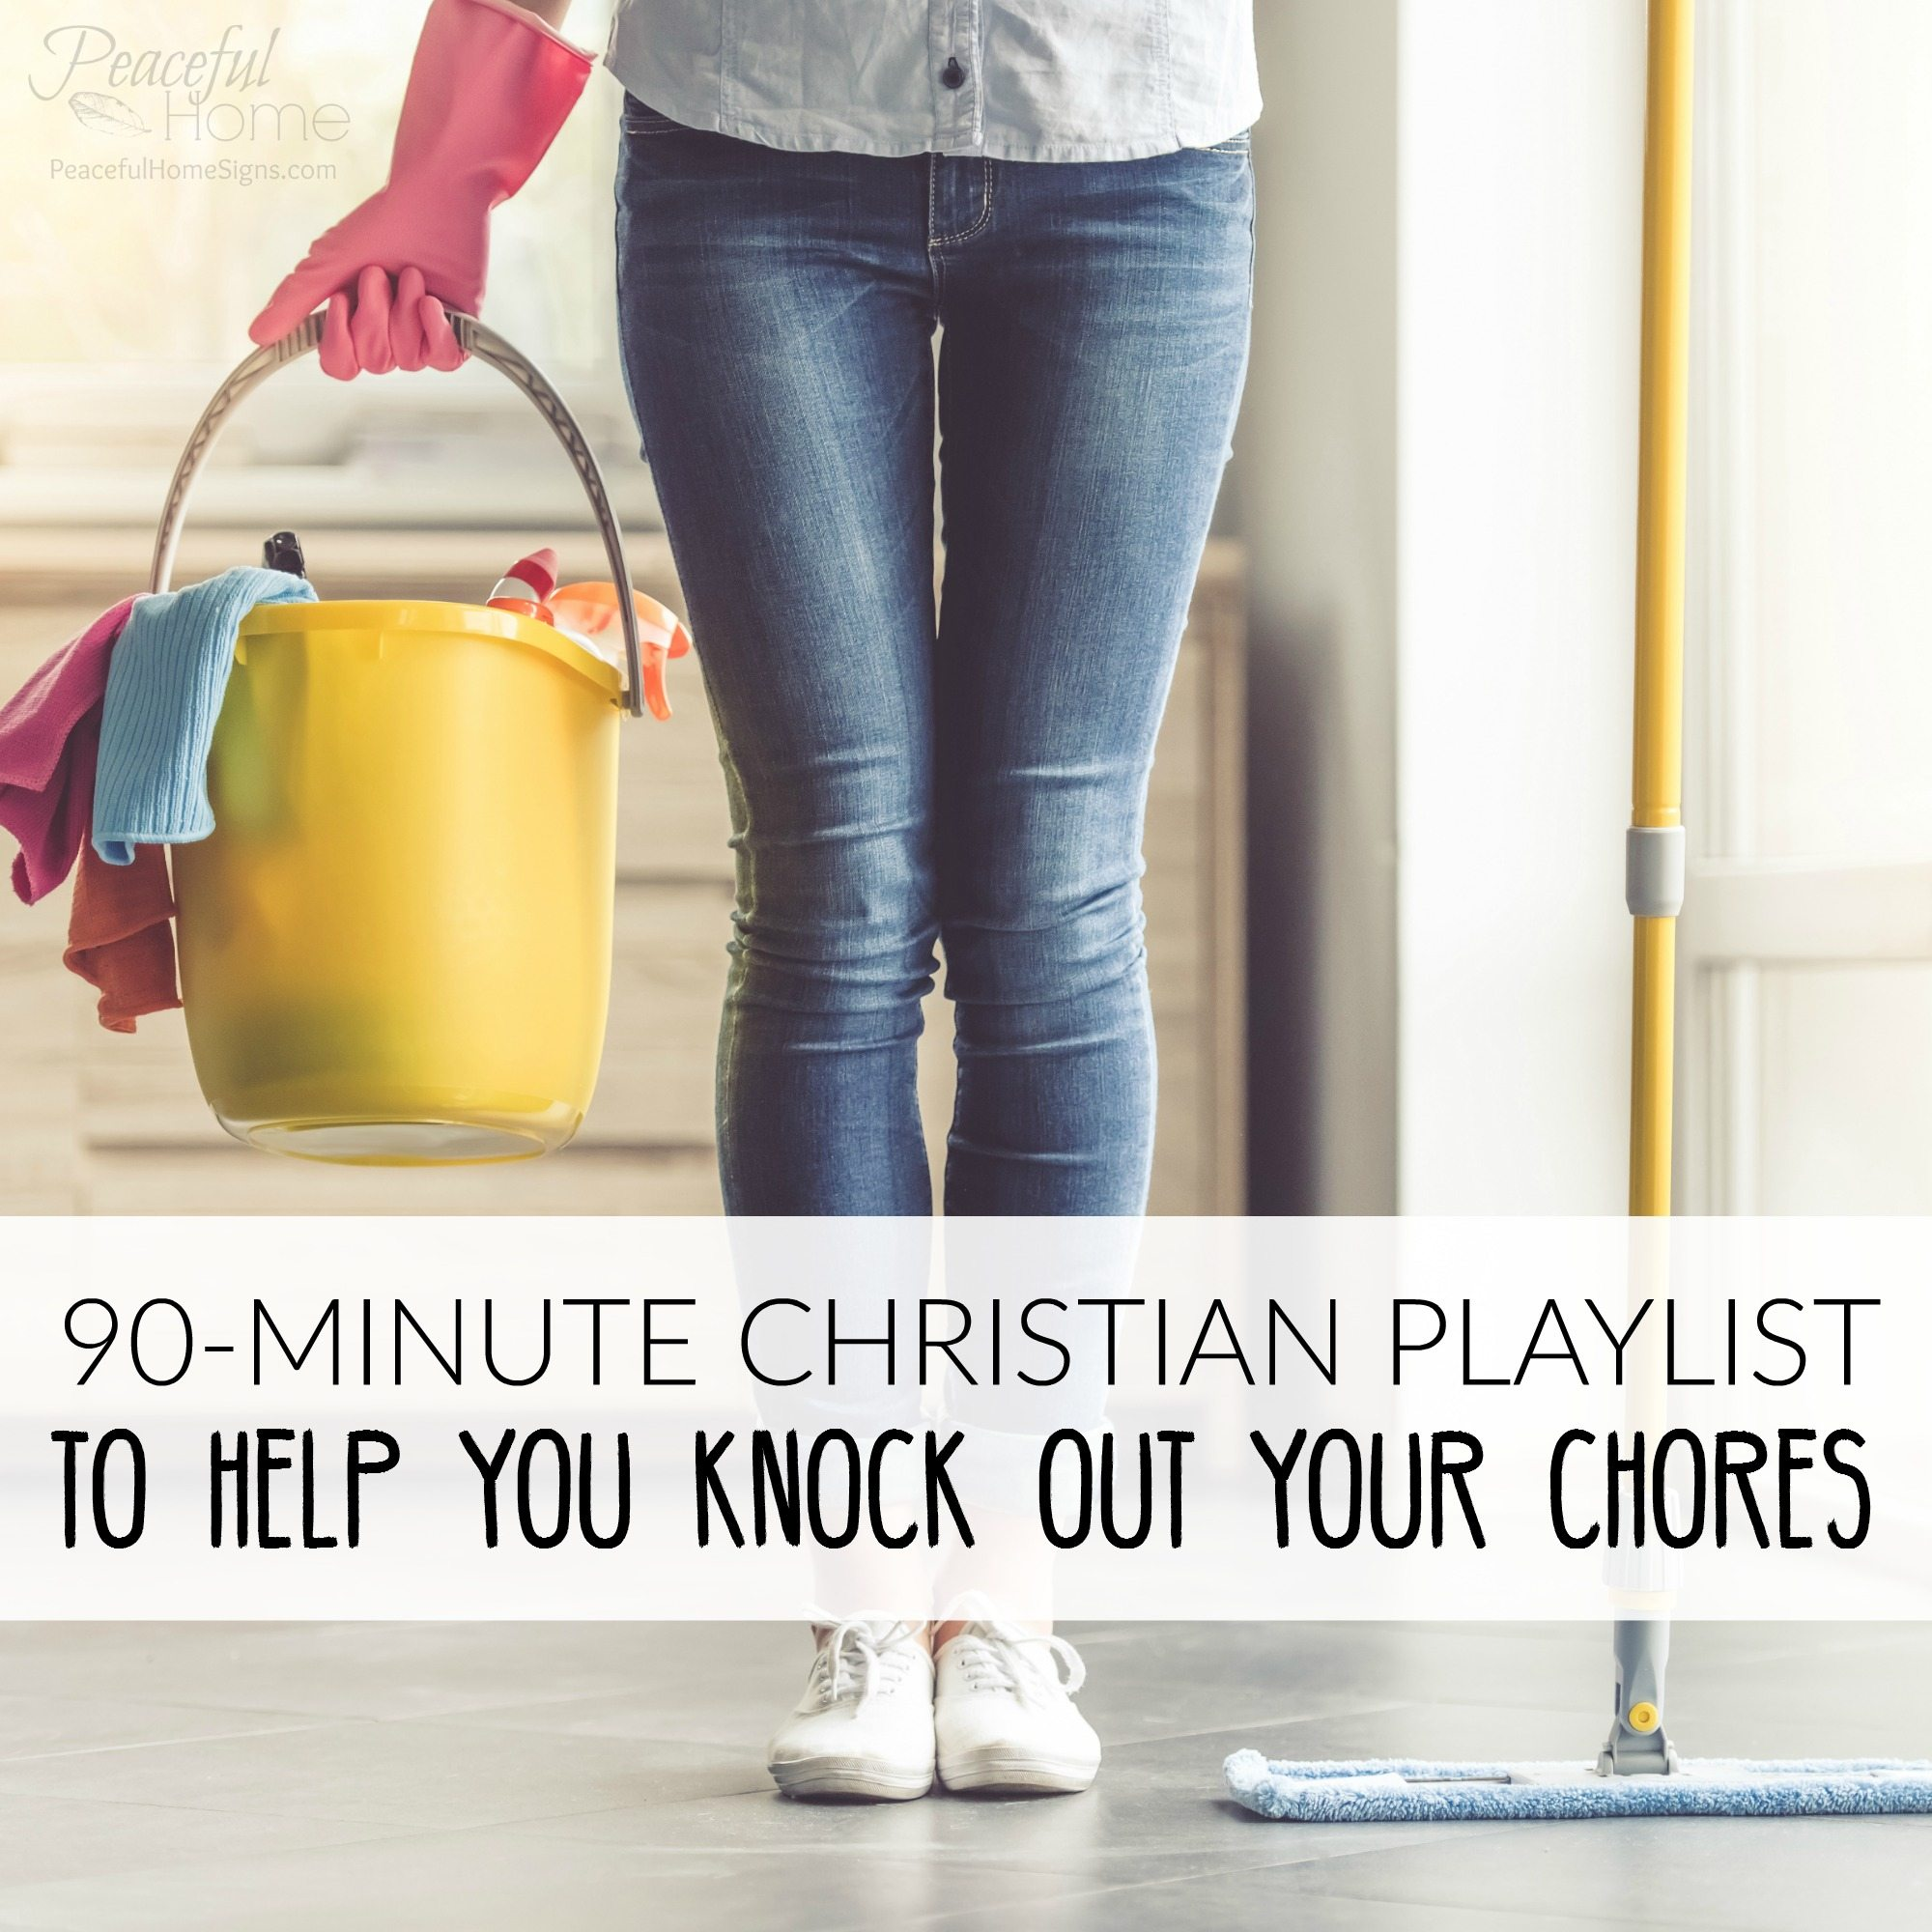 90-Minute Christian Playlist to help you knock out your Chores